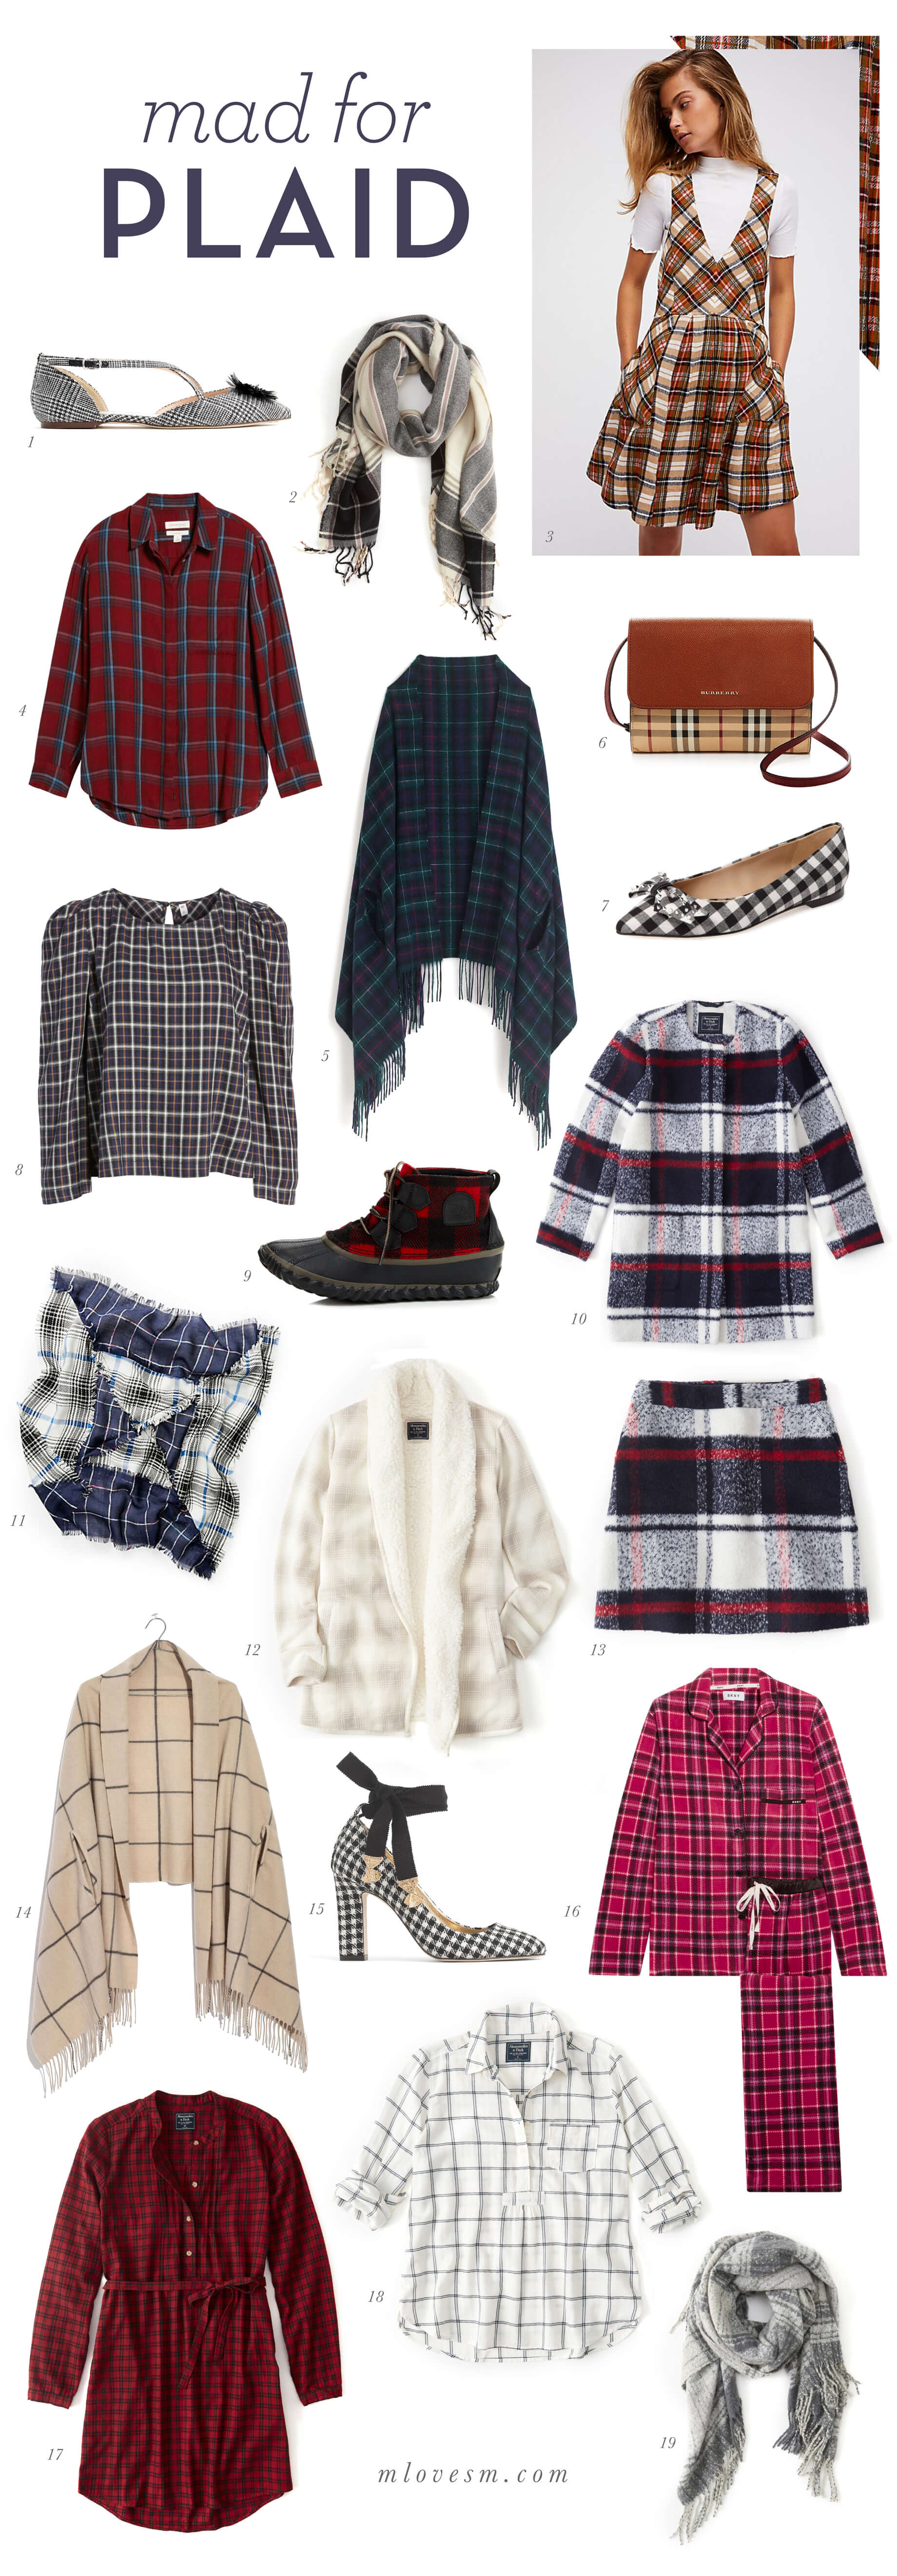 mad for plaid - plaid must-haves for fall 2017 - M Loves M @marmar